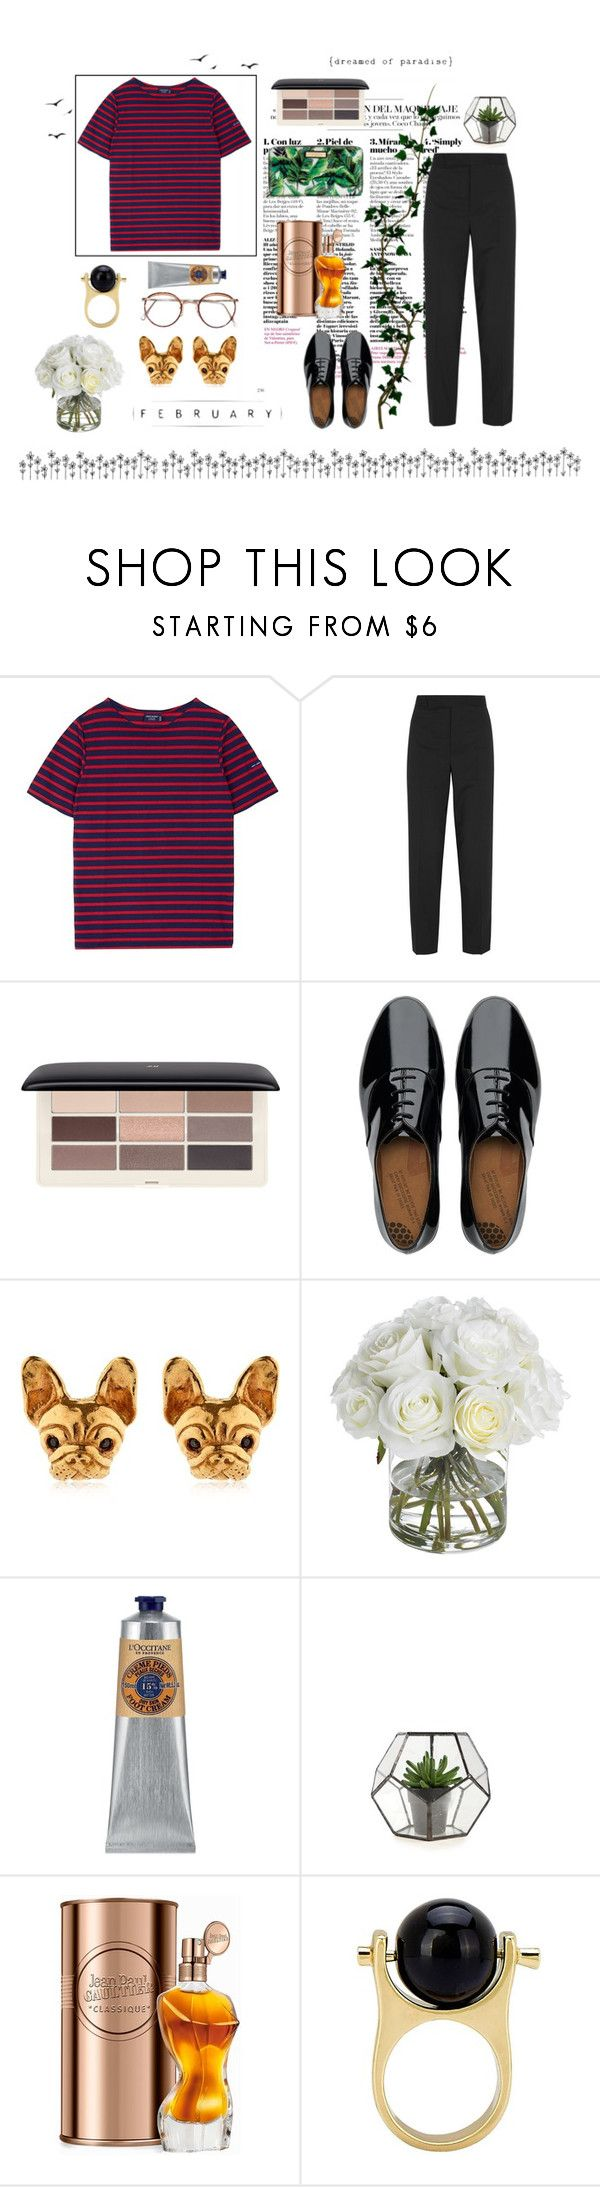 """So she ran away in her sleep-Paradise"" by bearcuddly ❤ liked on Polyvore featuring Saint James, Marni, H&M, FitFlop, Diane James, L'Occitane and Jean-Paul Gaultier"